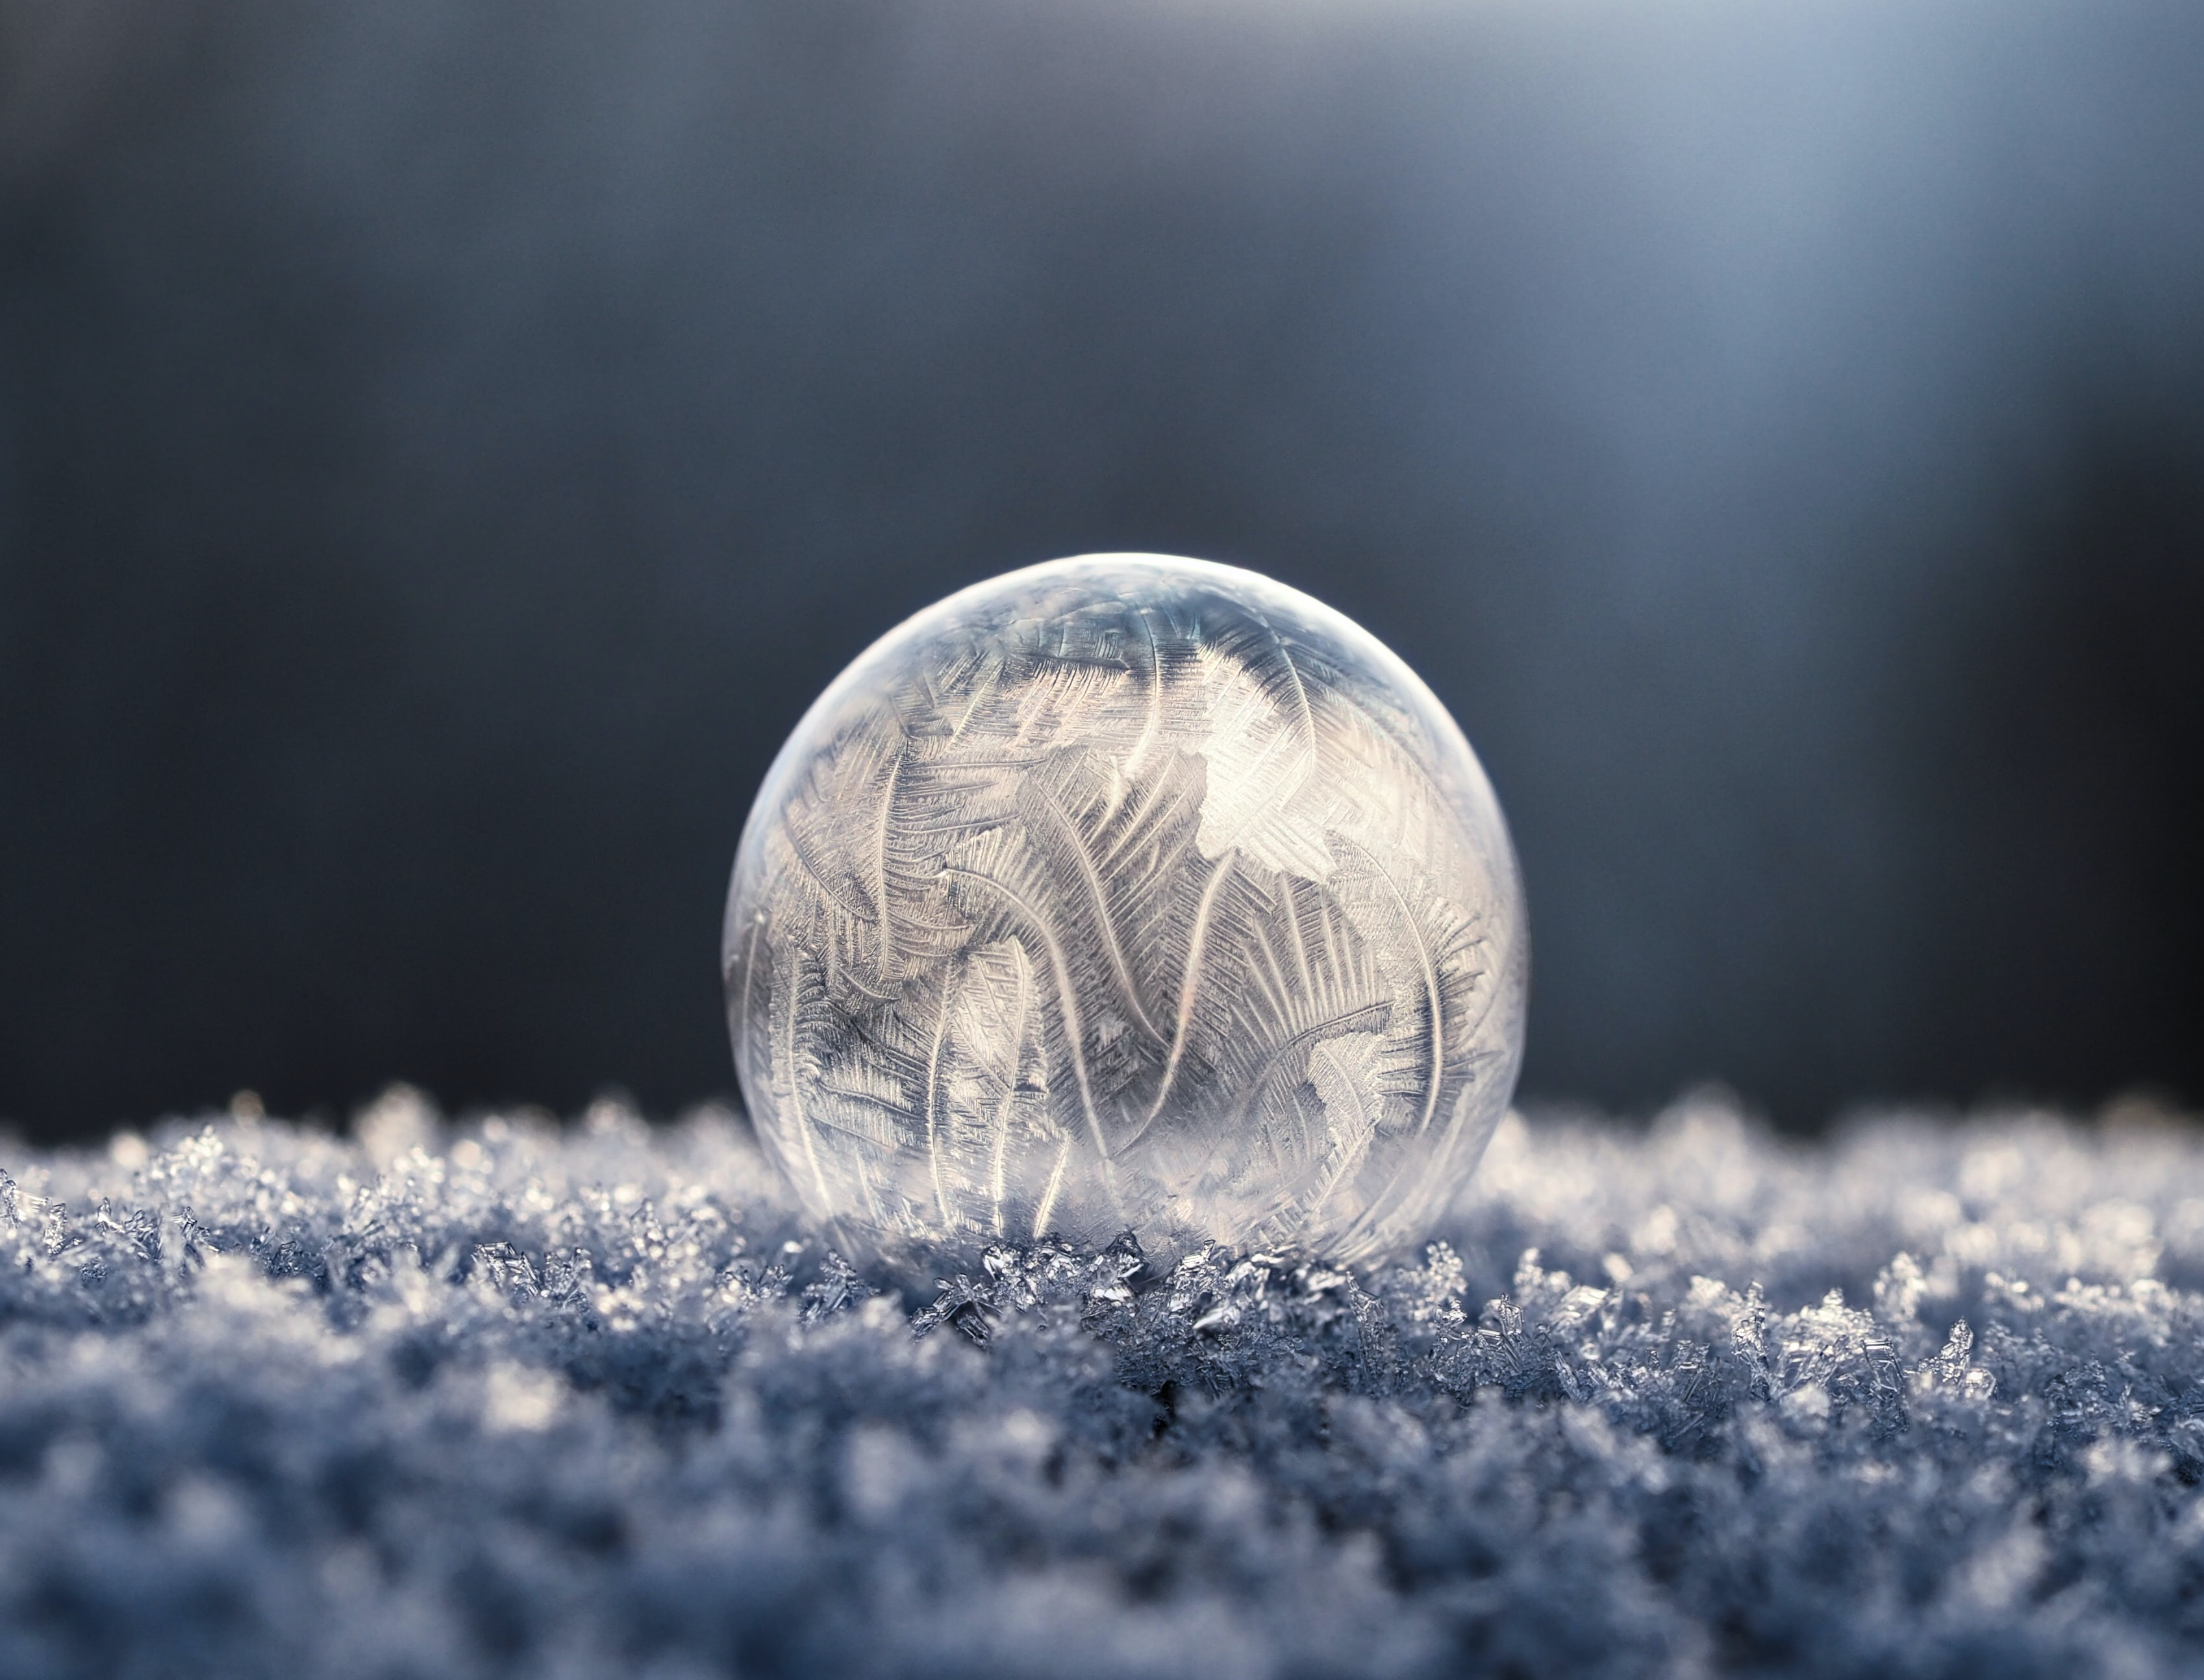 A macro view of a frozen winter ball on the cold winter ground.